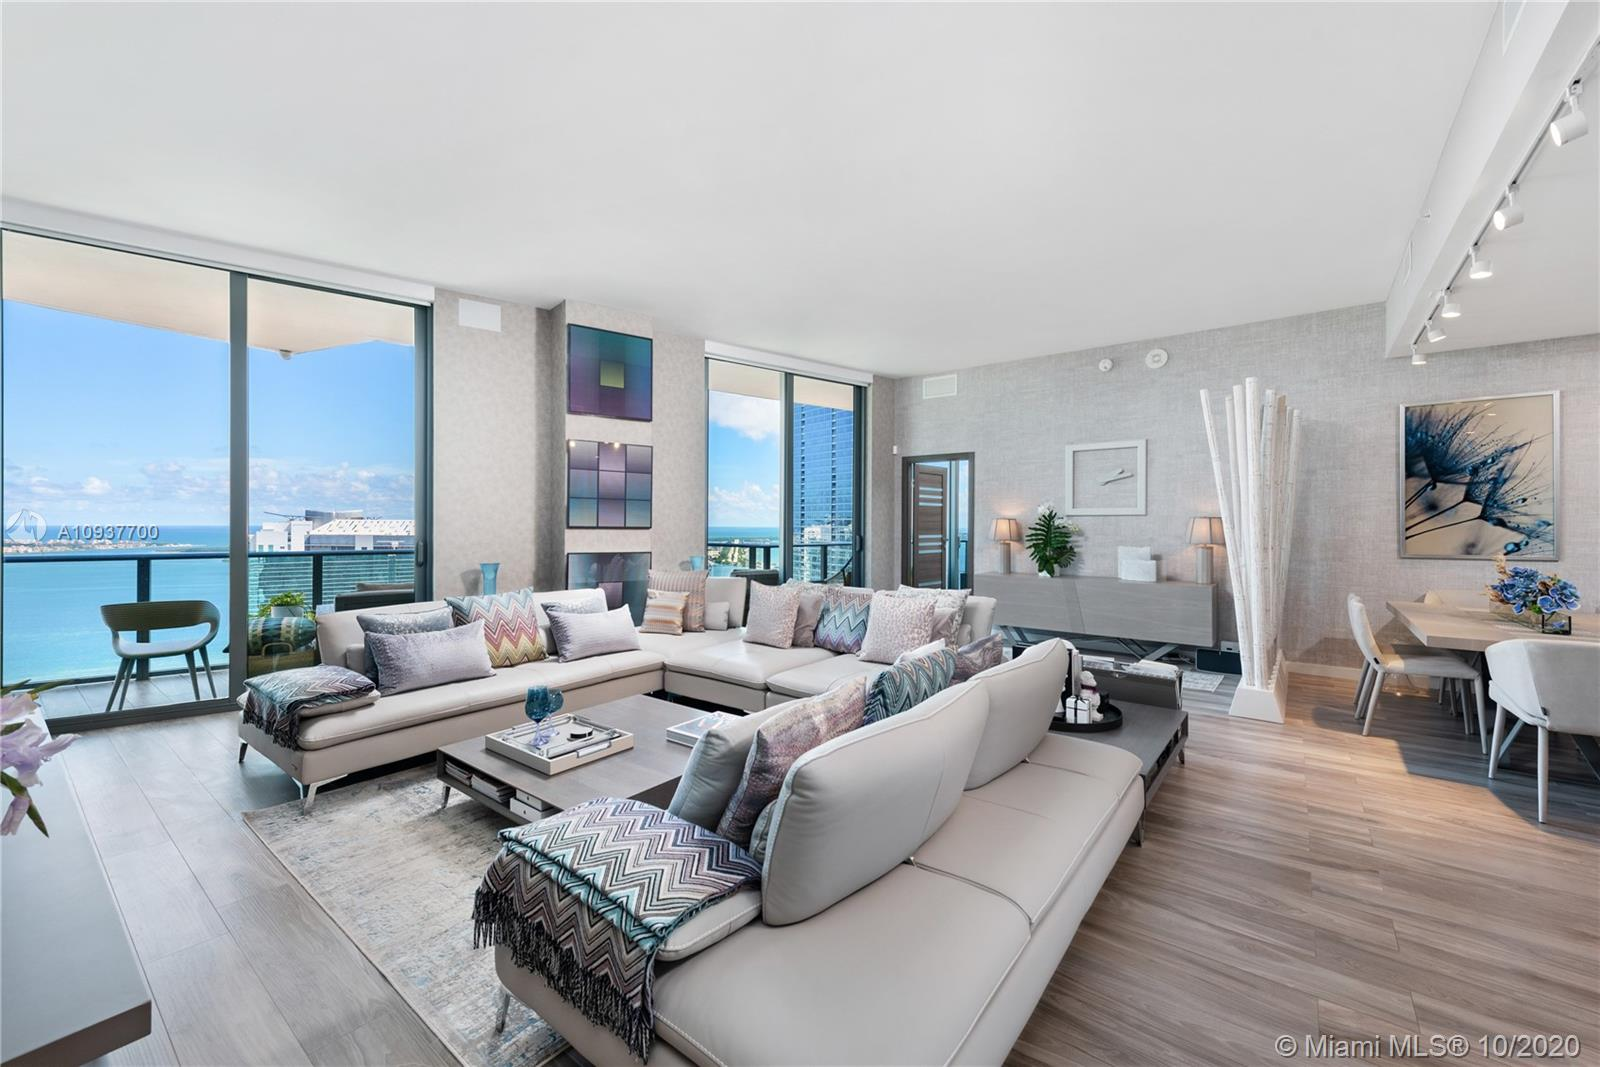 LUXURY IN THE SKY! Designer appointed 3 Bed+Den / 3.5 Bath Penthouse in luxurious SLS Brickell with over $250K in upgrades. Best Line at SLS. PH completely upgraded w/luxury end-finishes. Top-of-the-line Bosch and Subzero appliances, 10-foot ceilings, exquisite wall paper accents, sleek wood like porcelain floors, Italian custom doors and closets. Floor-to-ceiling glass windows open to large balcony w/panoramic views of ocean & Miami skyline. Control 4 Advanced Home Automation System for lighting, temperature & blinds. Master Bath w/tub & shower, Italian cabinets, LED mirrors and top-of-the-line Toto automated toilette/bidet. Amenities: fitness center, rooftop pool, full-service spa, terrace w/200 ft-long pool, cabanas, full-service concierge, kids room, party room, and top restaurants.